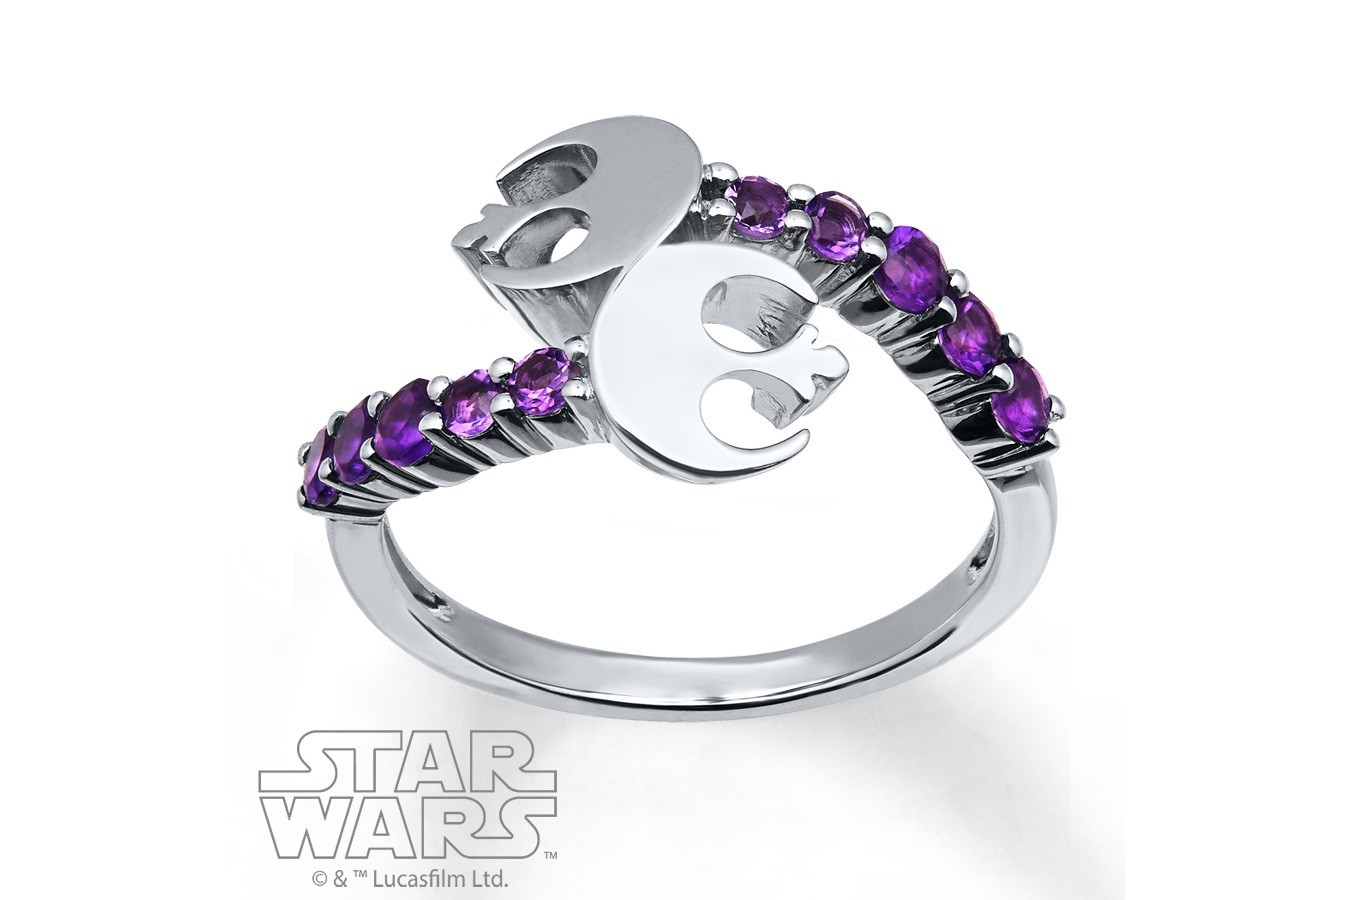 New Kay Jewelers x Star Wars rings